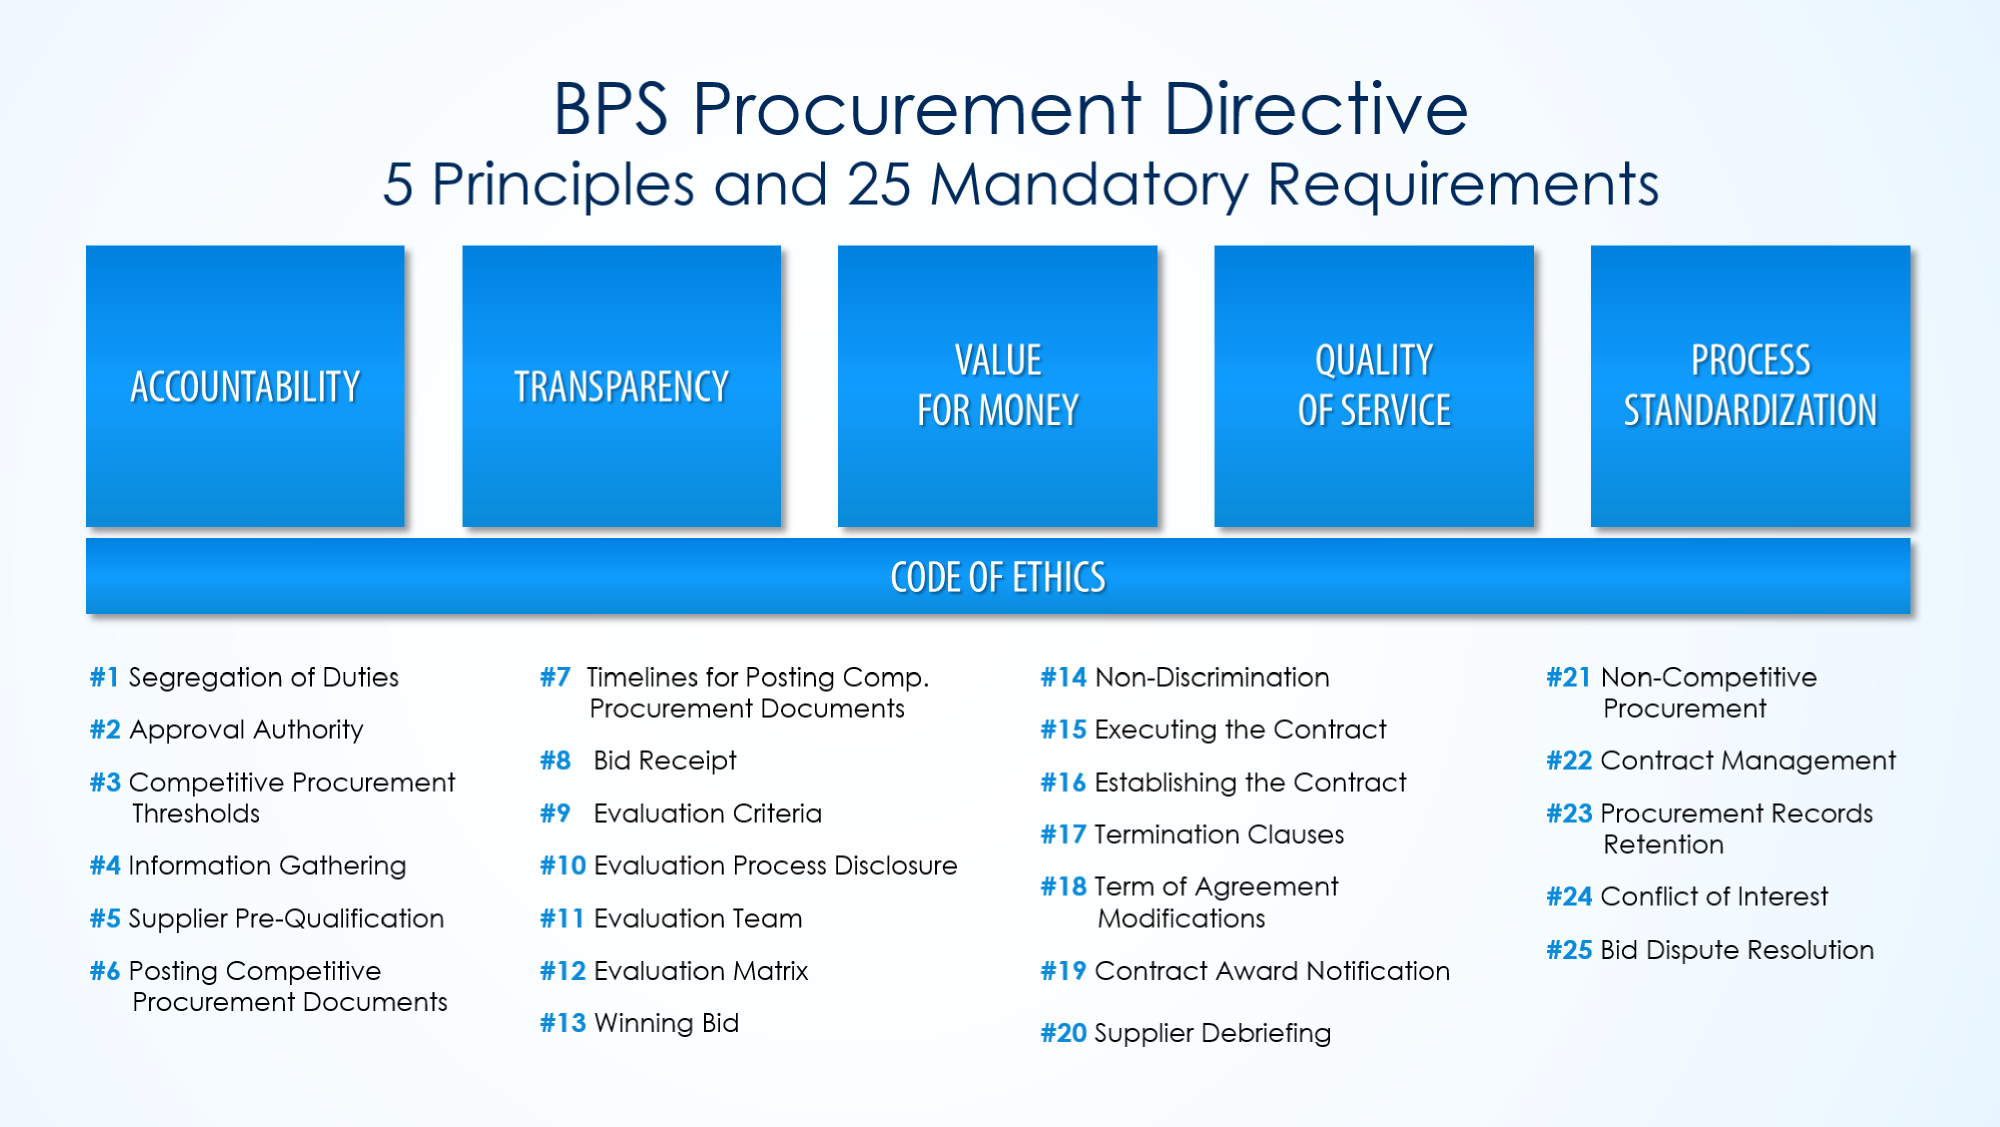 Broader public sector bps procurement directive procurement of toronto has incorporated the ontario bps directive including the 25 mandatory requirements as the procurement policy of the university of toronto pronofoot35fo Choice Image